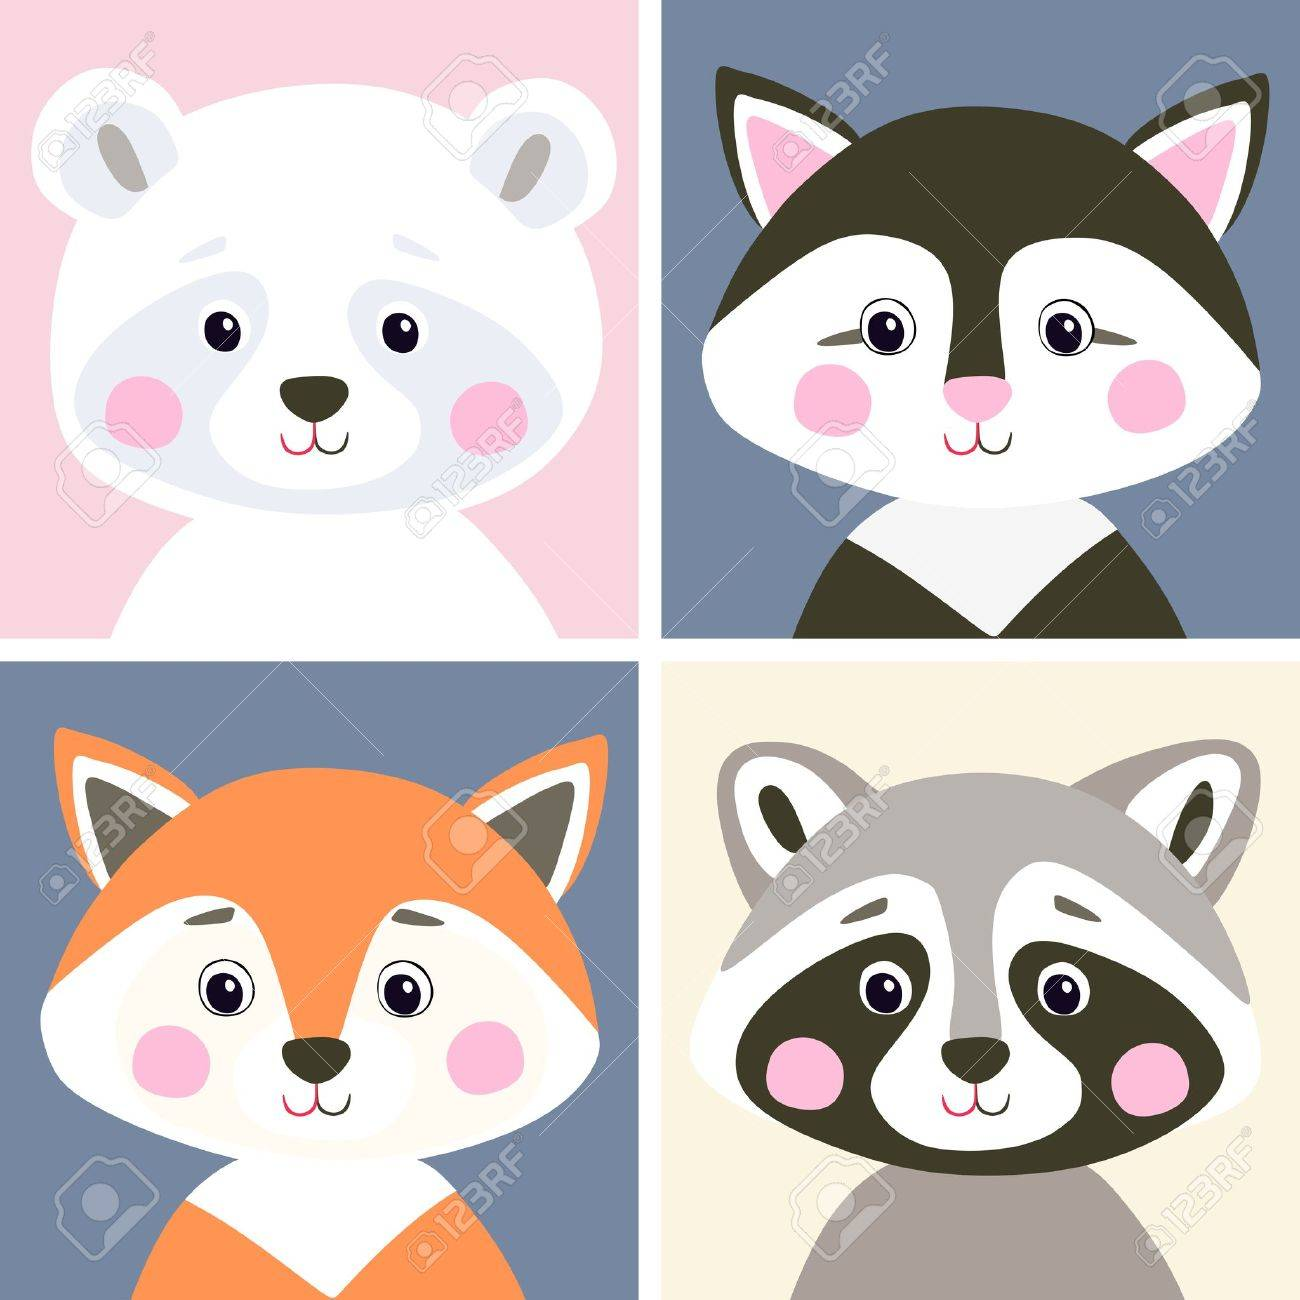 Vector set of cute woodland and pet animals. Funny polar bear, kitten, fox and raccoon in flat style. Illustration for children. - 73956329